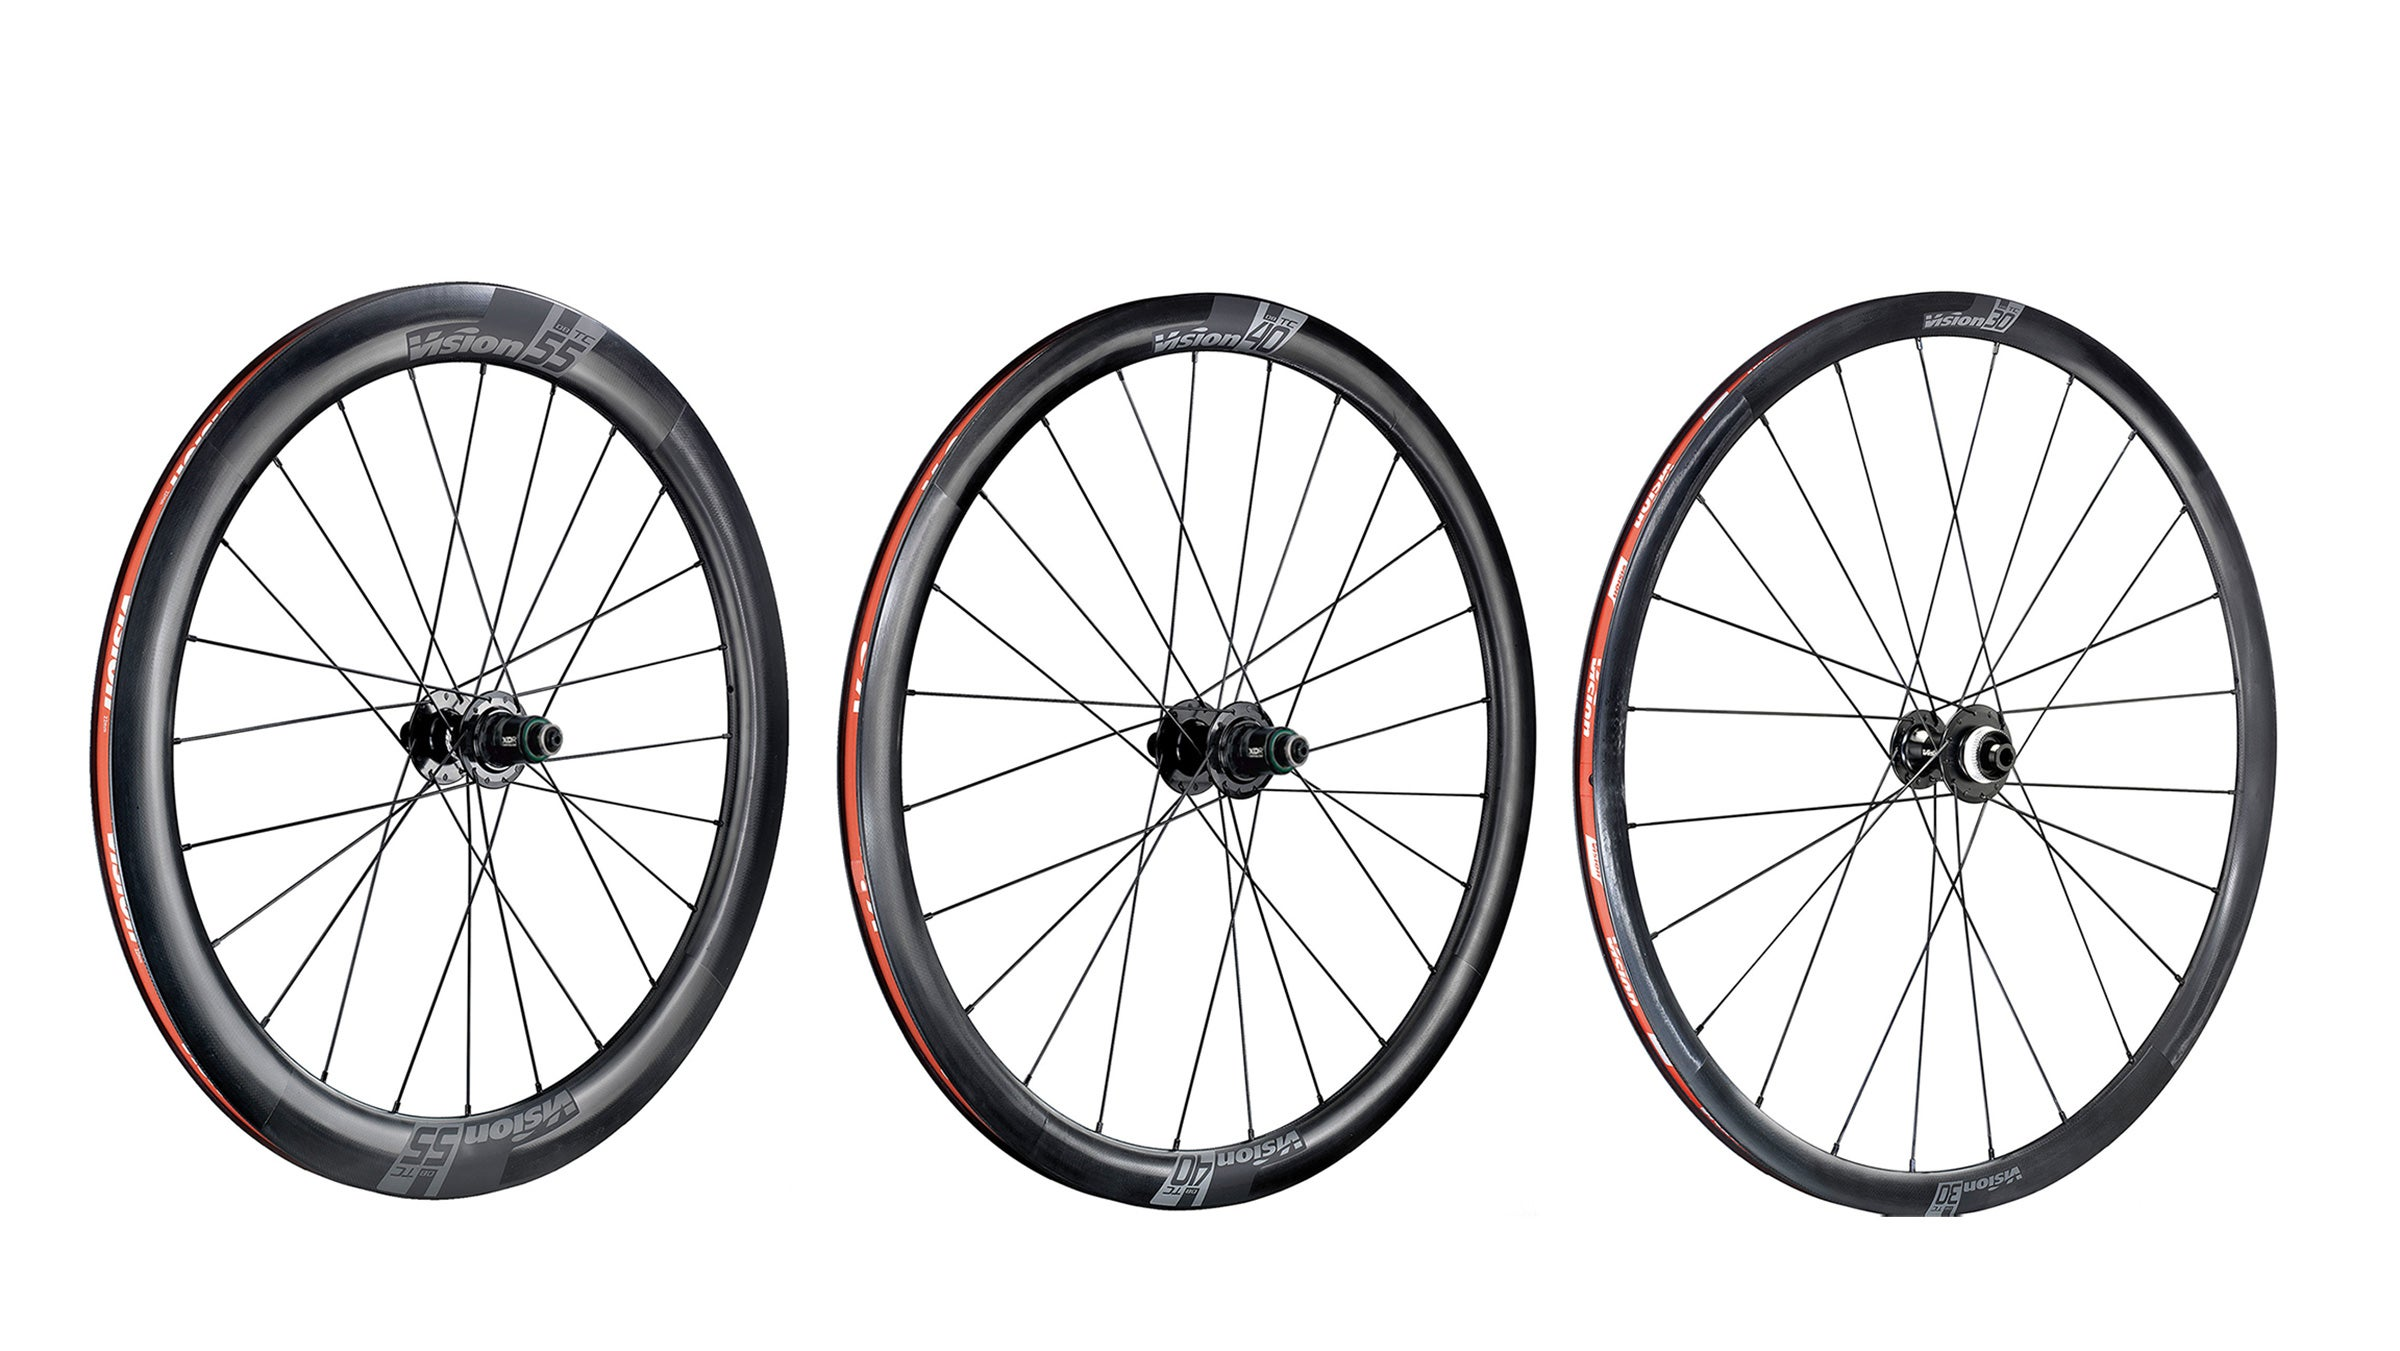 Vision rolls out Team Course disc brake wheels for the price-conscious – VeloNews.com